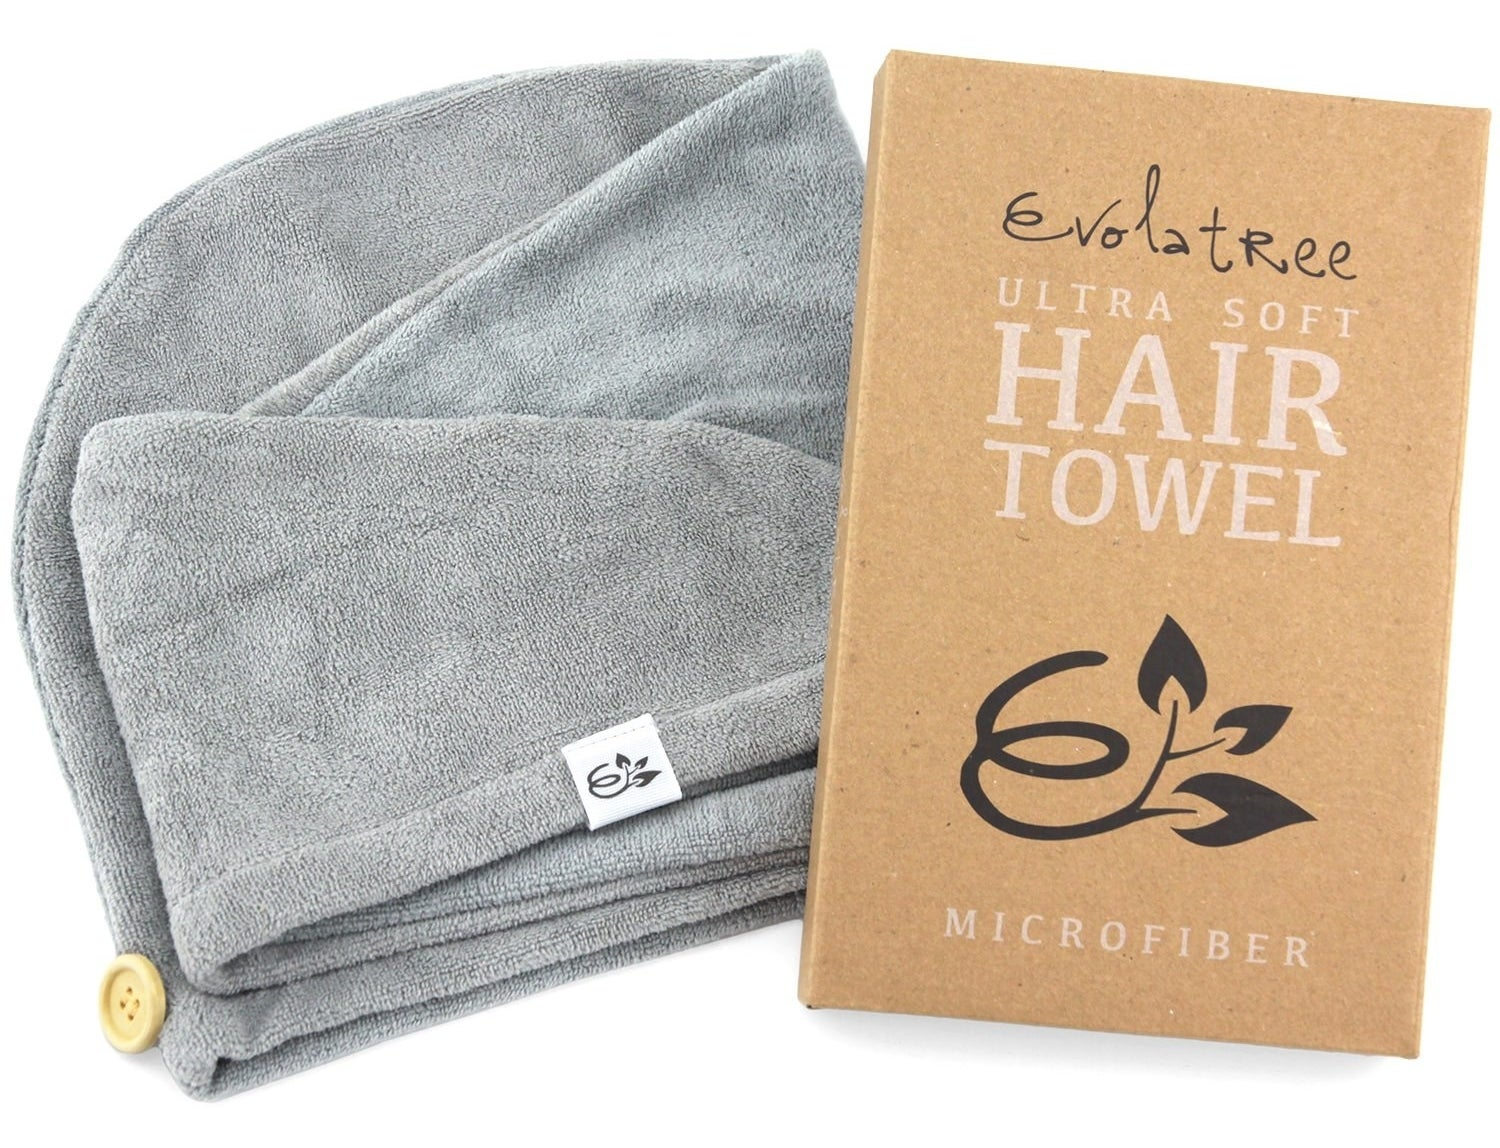 The microfibre hair towel next to its package